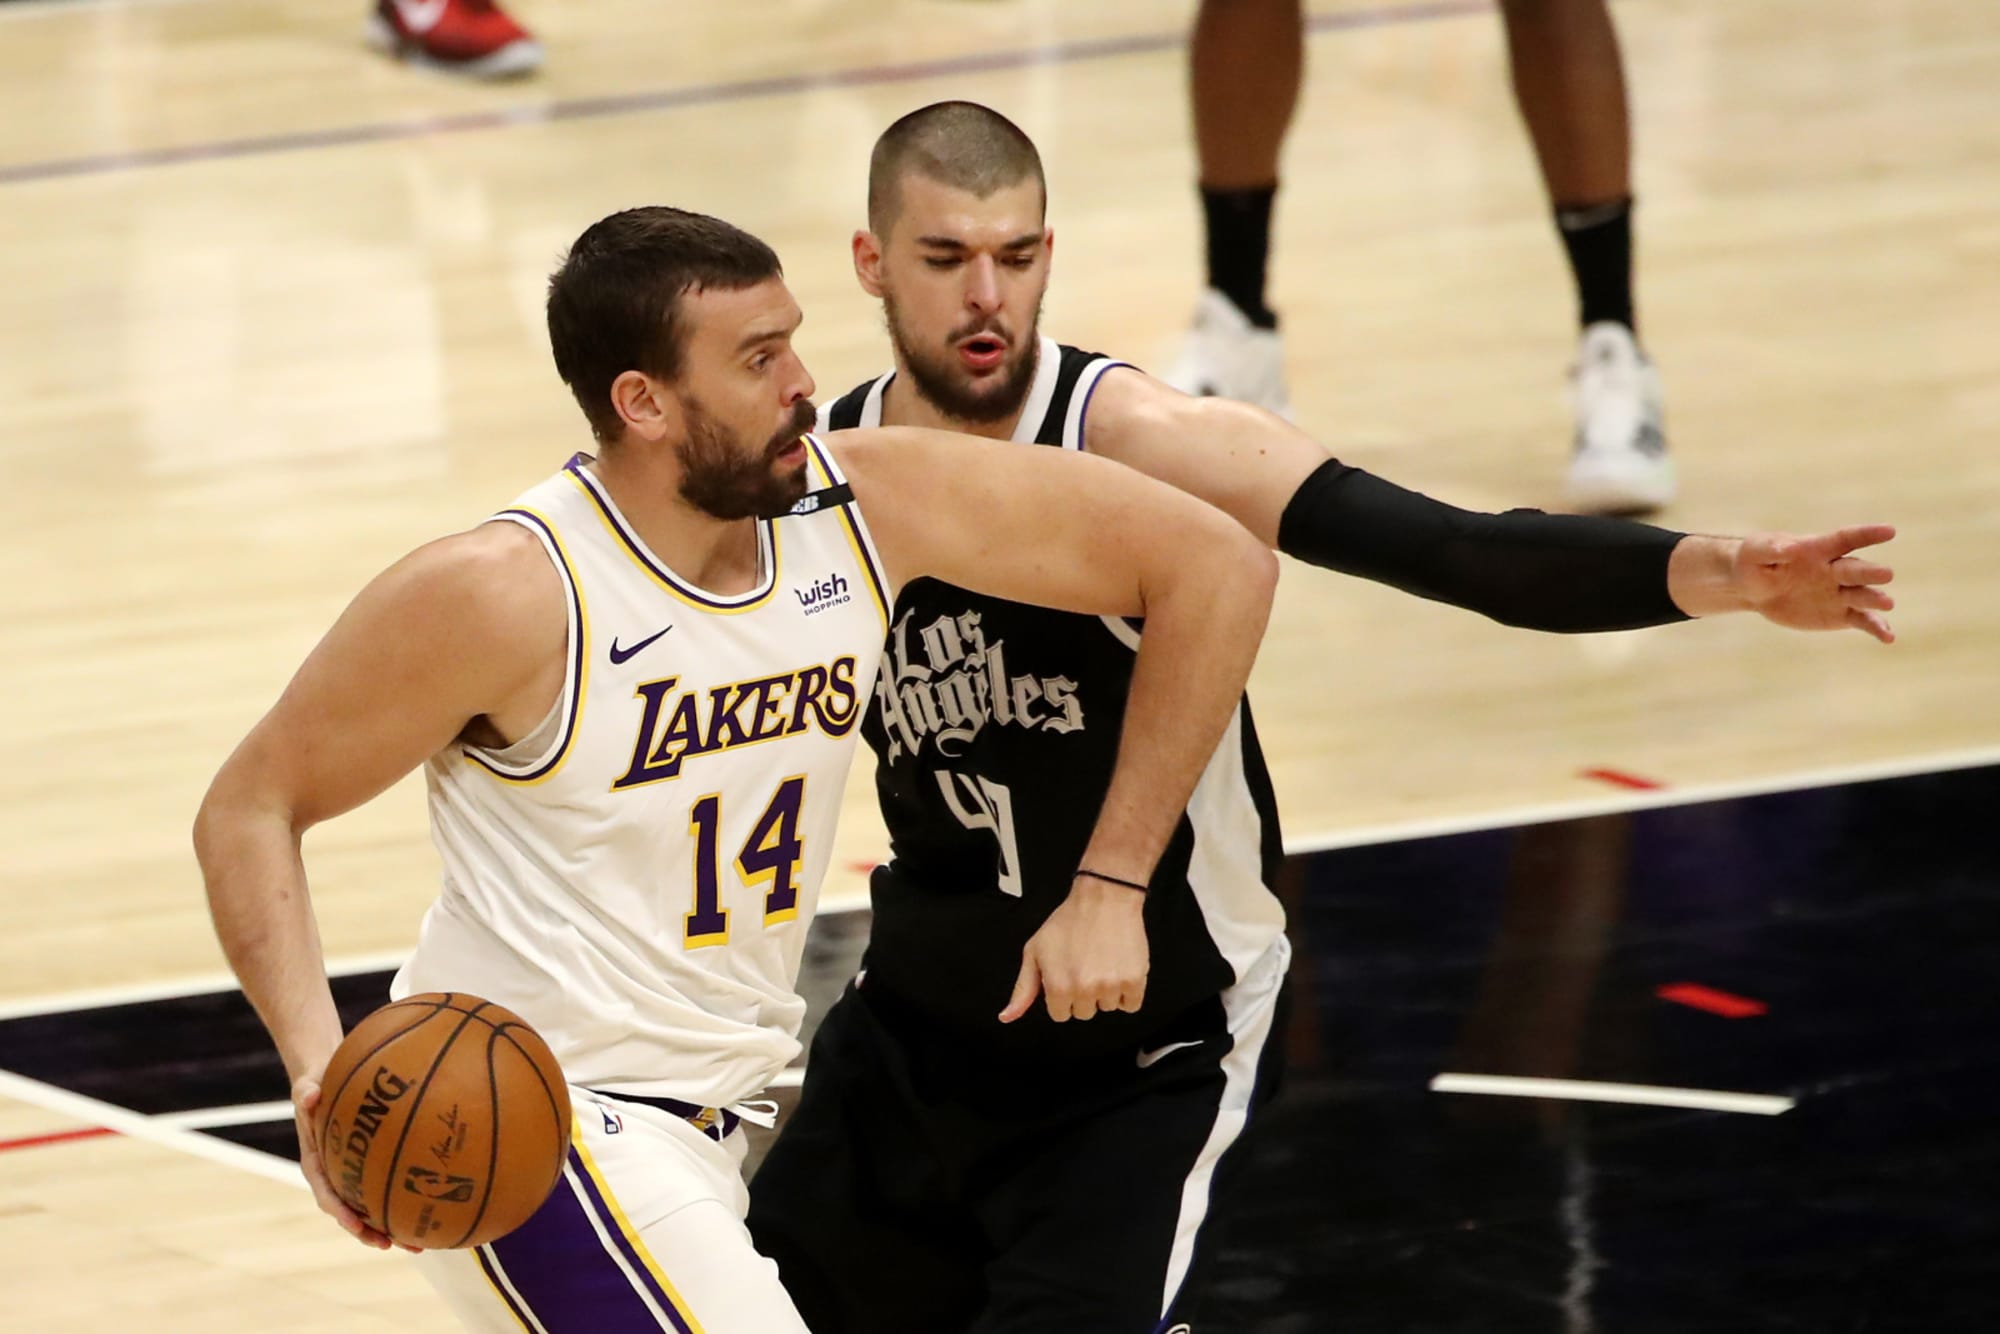 Toronto Raptors: Should the Raptors pursue a Marc Gasol reunion if the Lakers buy him out?